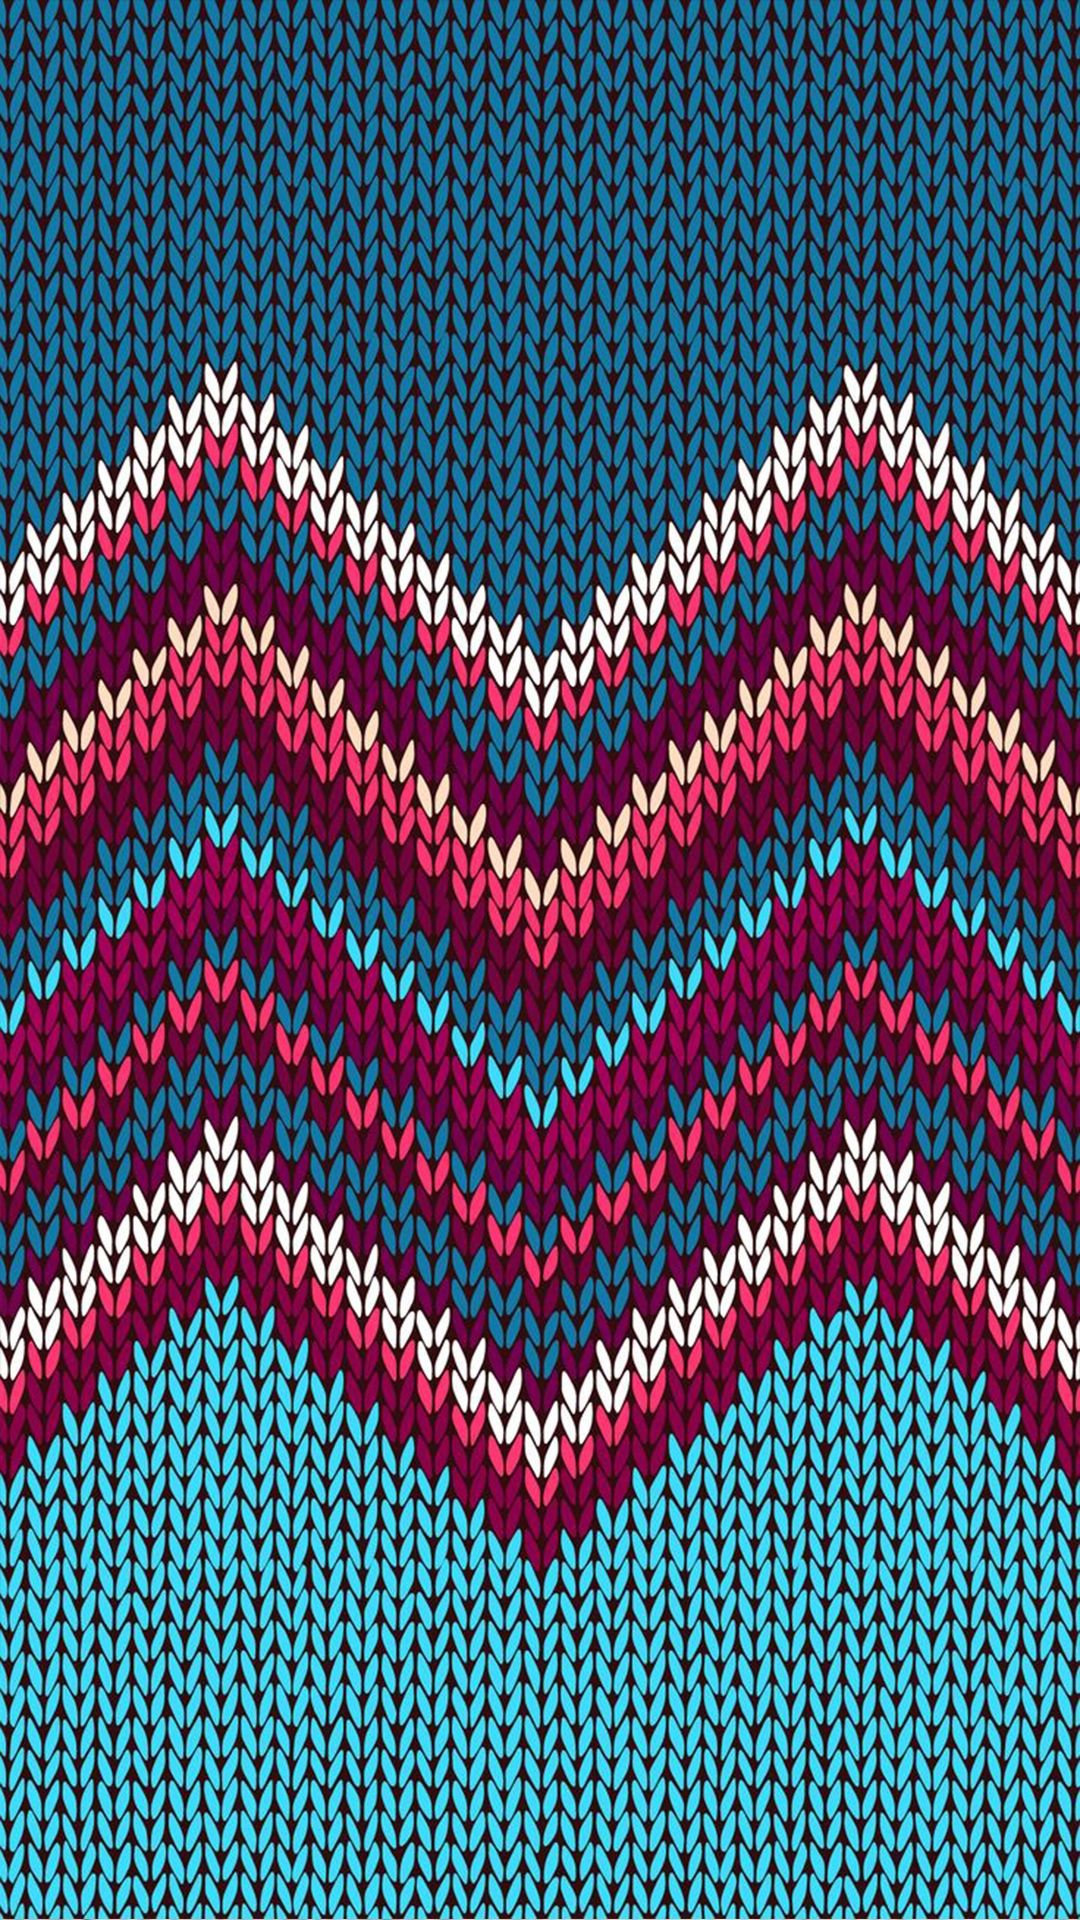 Knitting Pattern Wallpaper : Knitted pattern tap to see more texture iphone